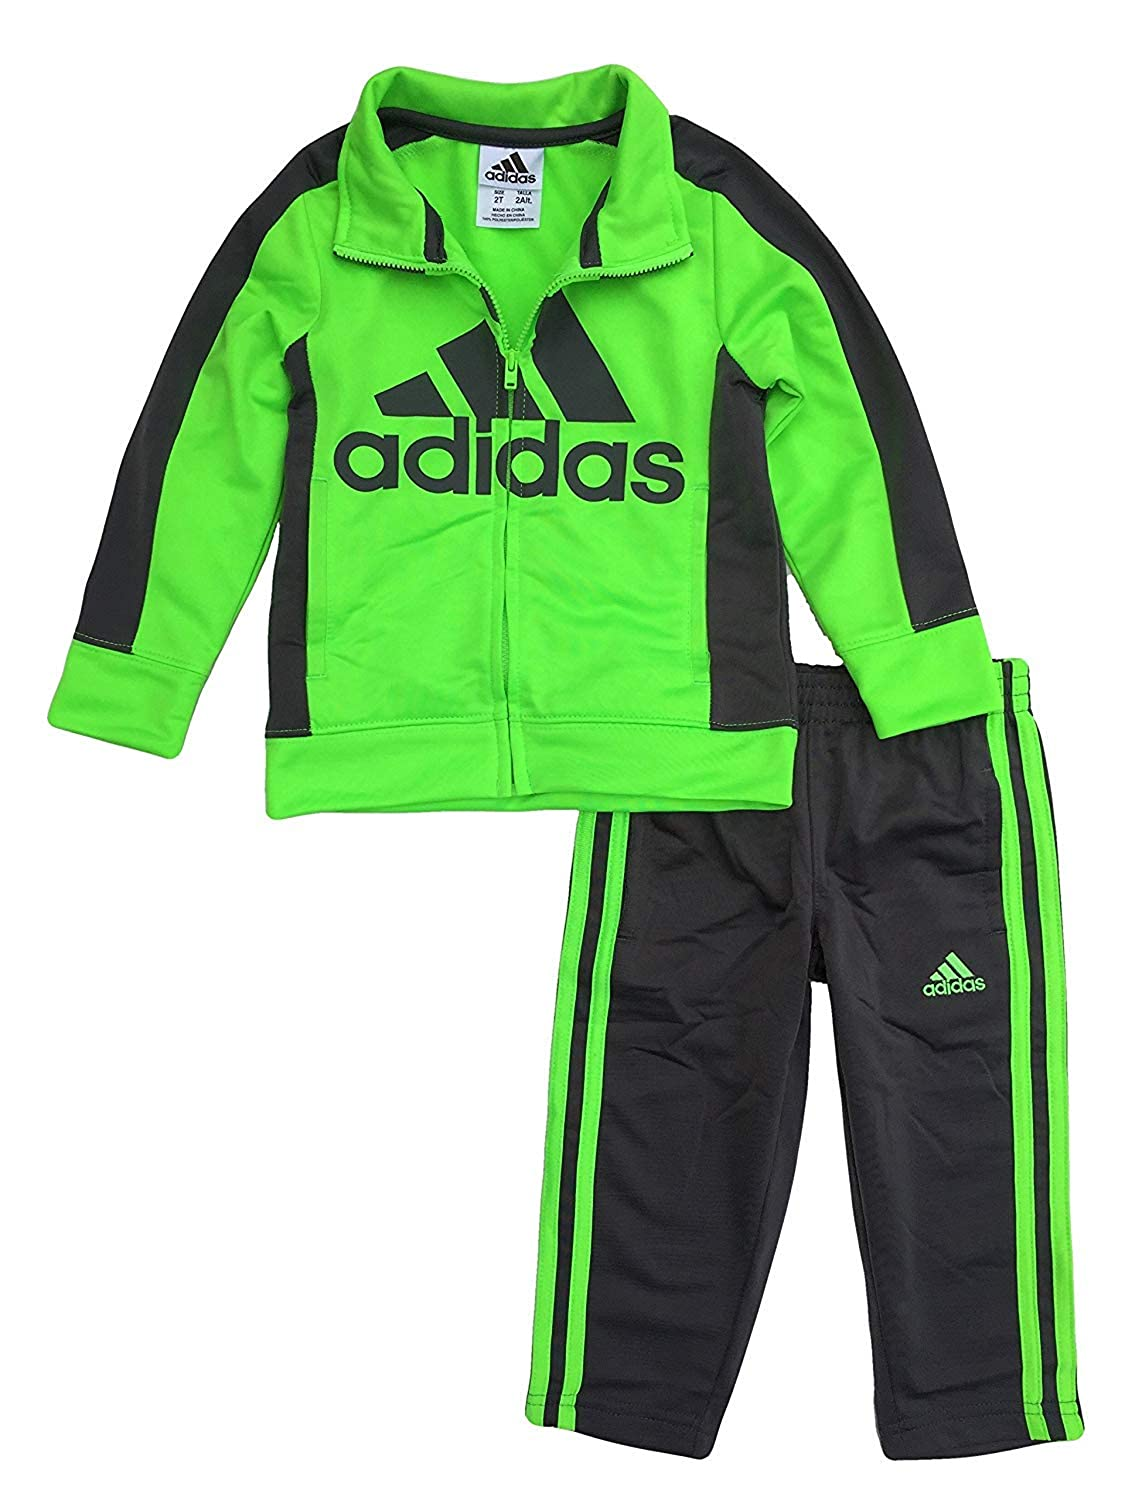 adidas Boys' Tricot Jacket and Pant Set 5) AG6059